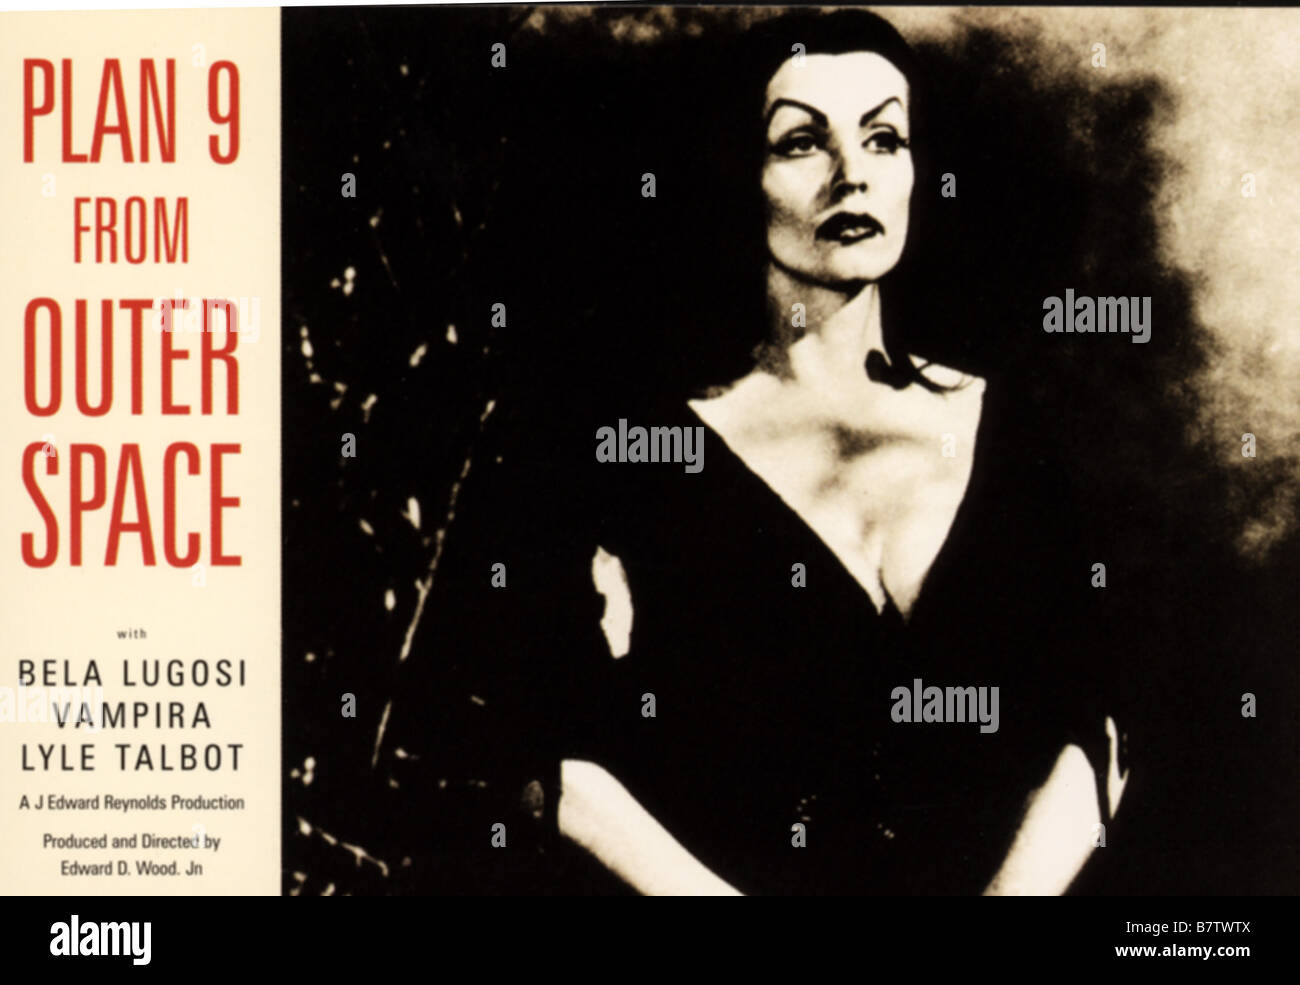 Plan 9 from Outer Space Plan nine from Outer Space  Year: 1959 USA Vampira  Director: Edward D. Wood Jr. - Stock Image